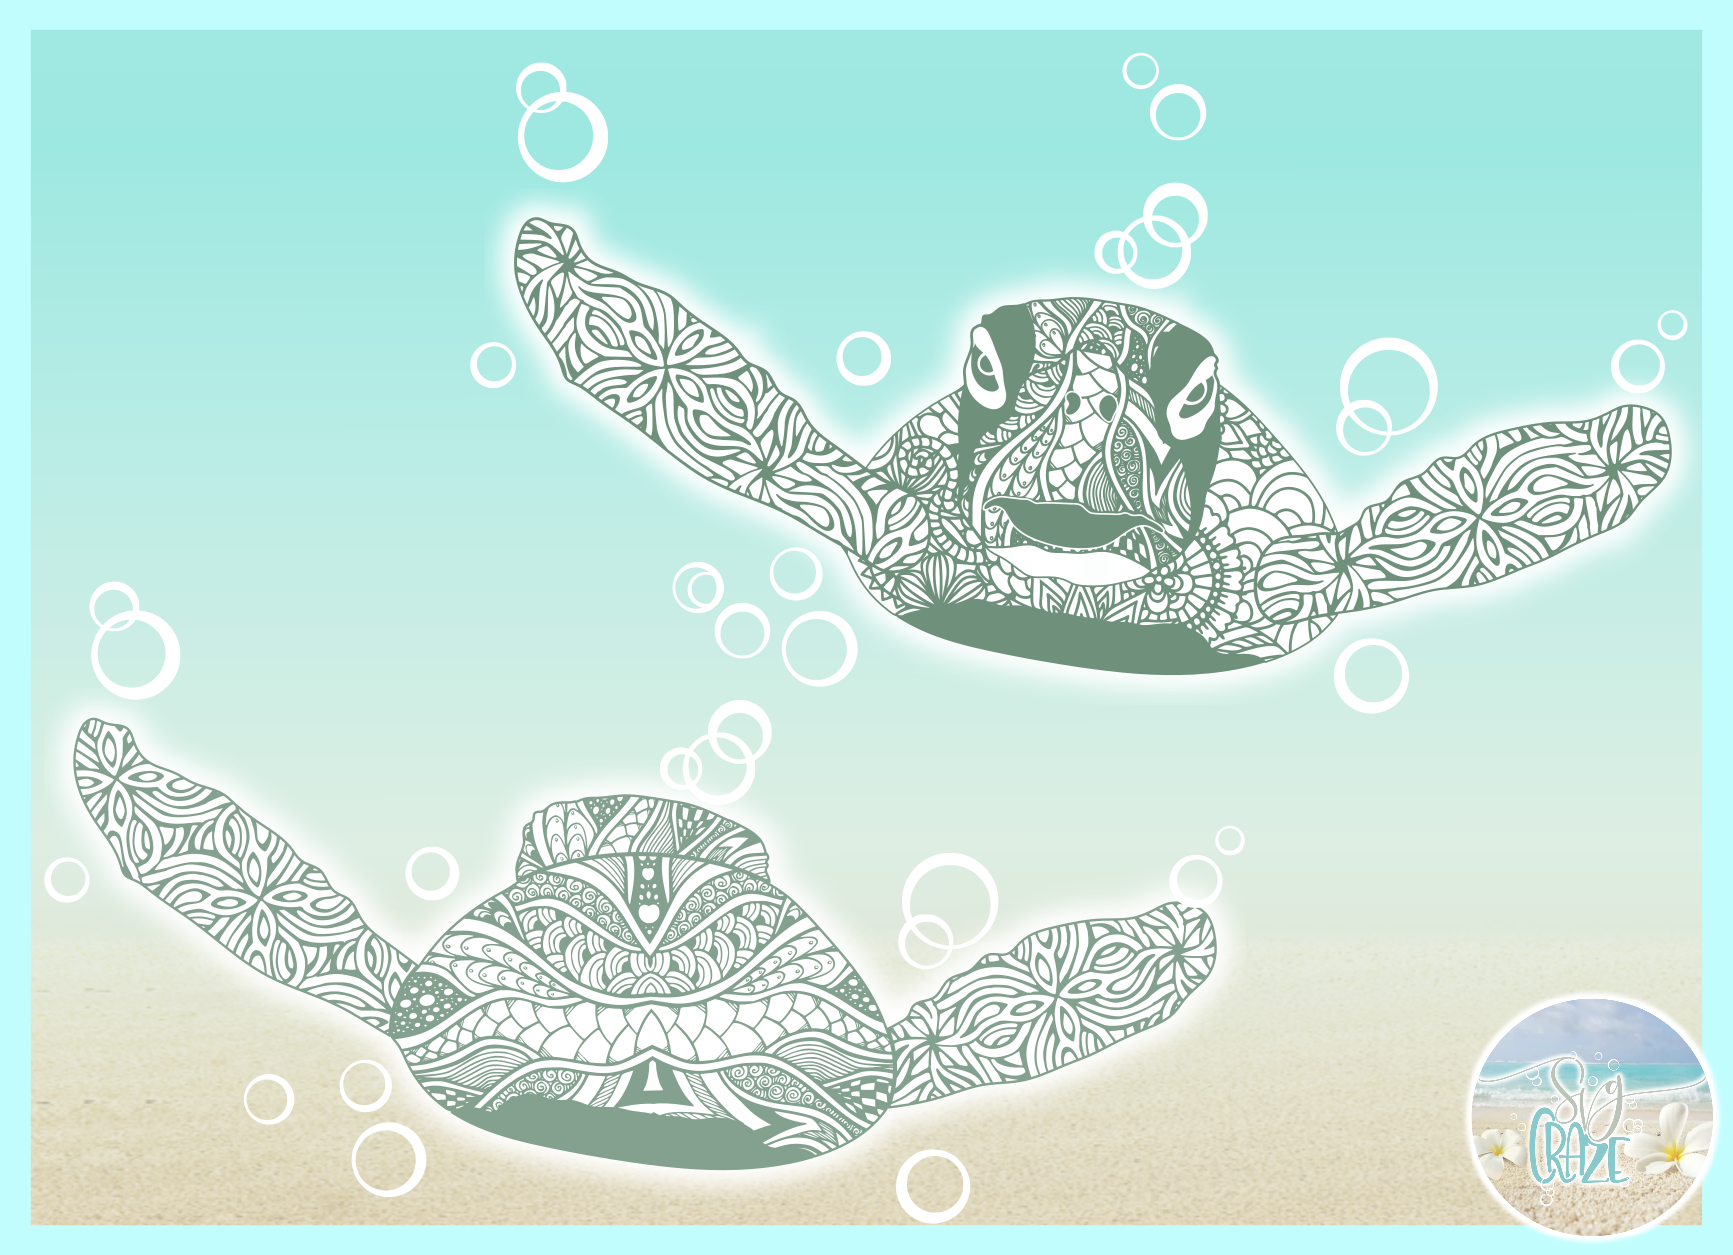 Sea Turtle Mandala Zentangle Front and Back View SVG example image 2